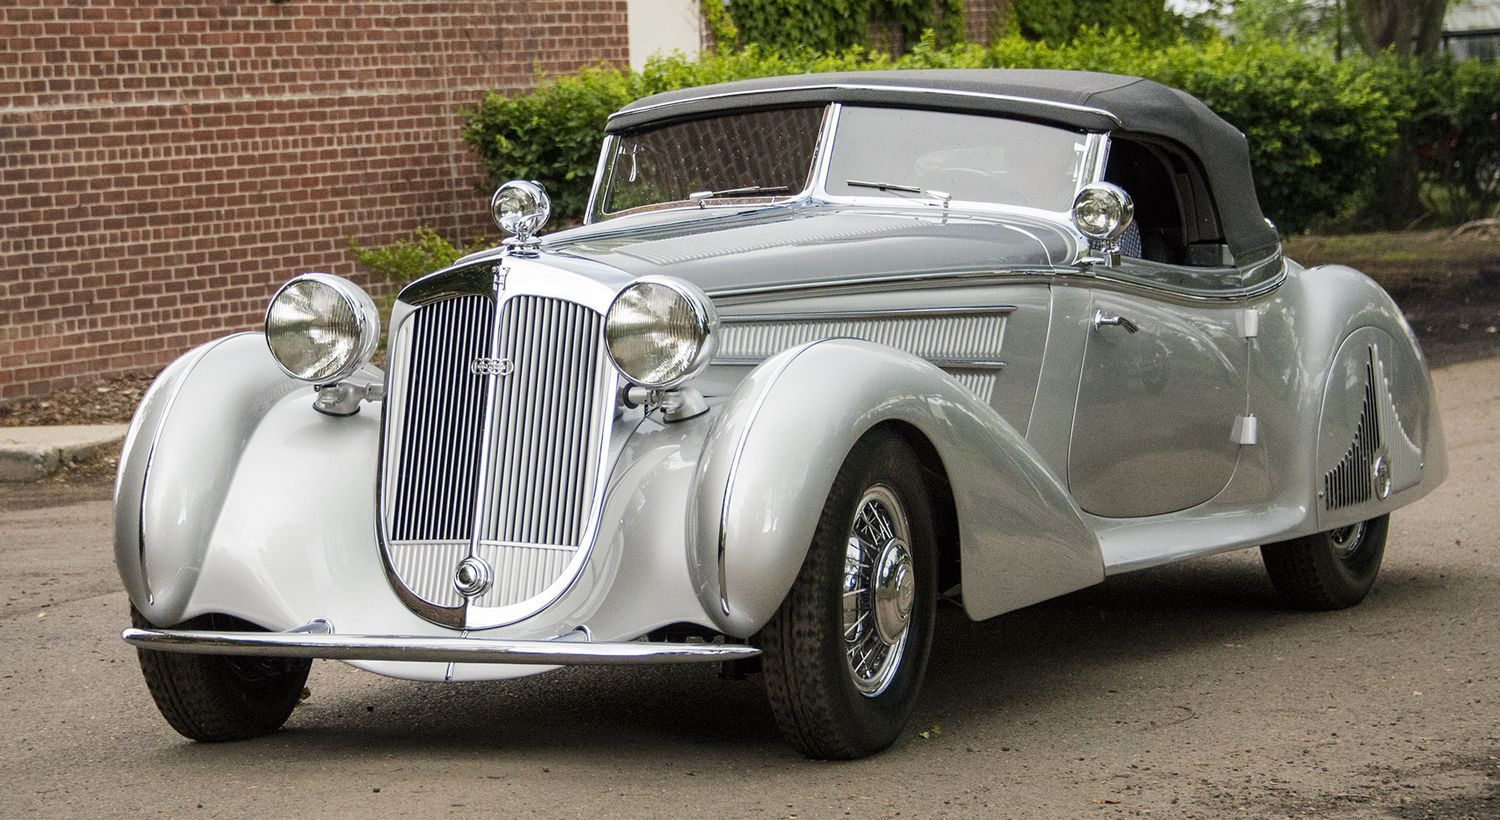 Packard Panther Horch 853 Take Best In Show At Greenwich